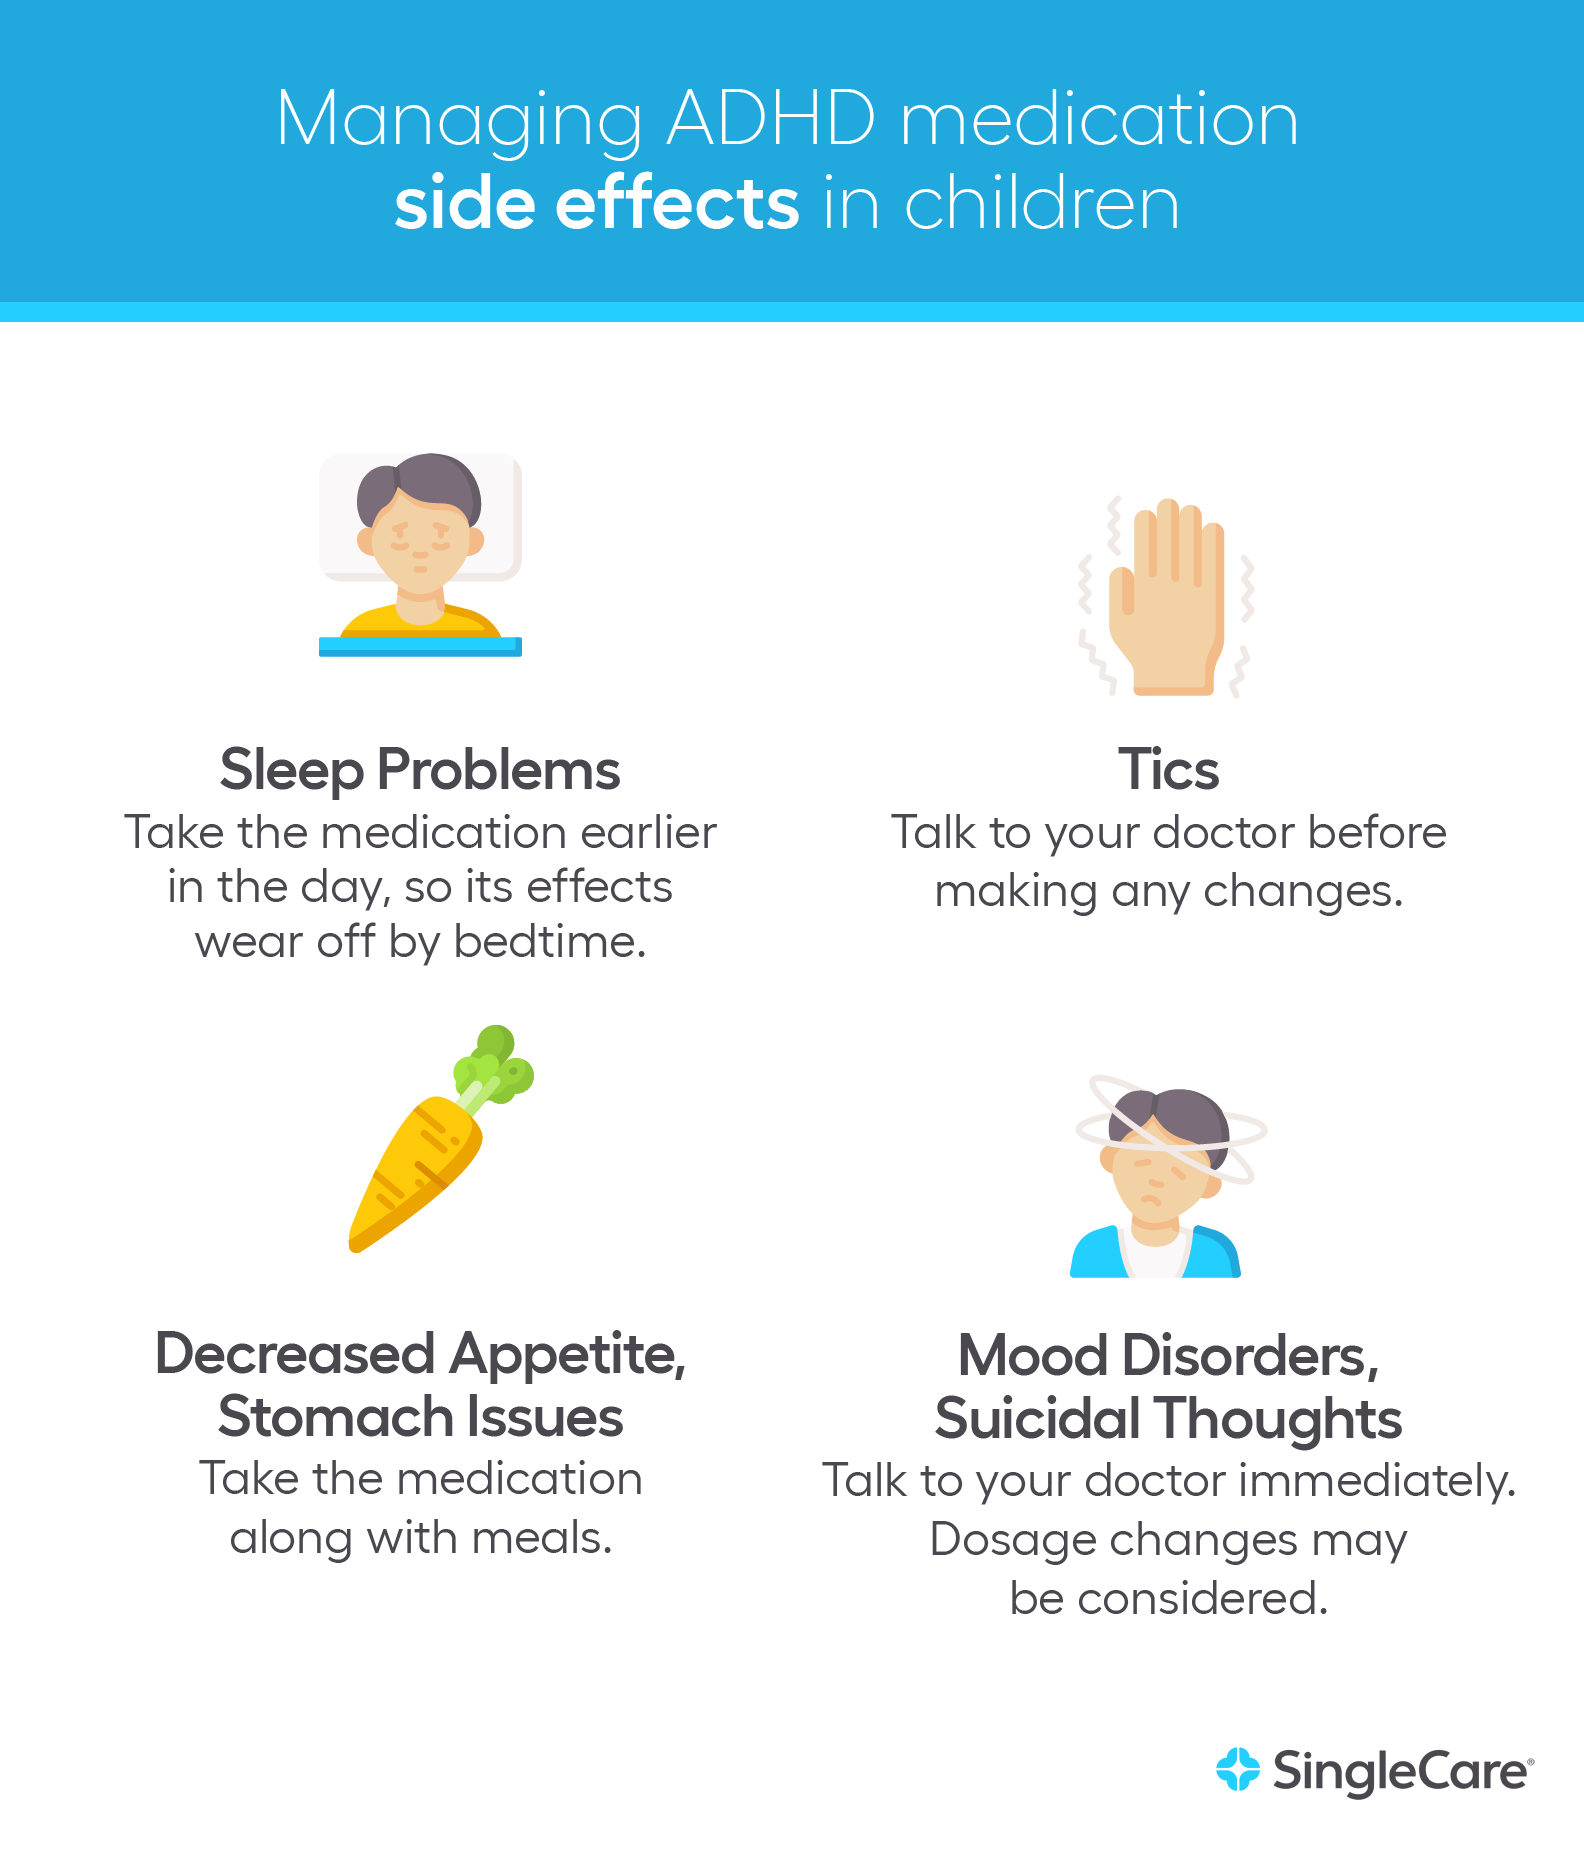 managing ADHD side effects